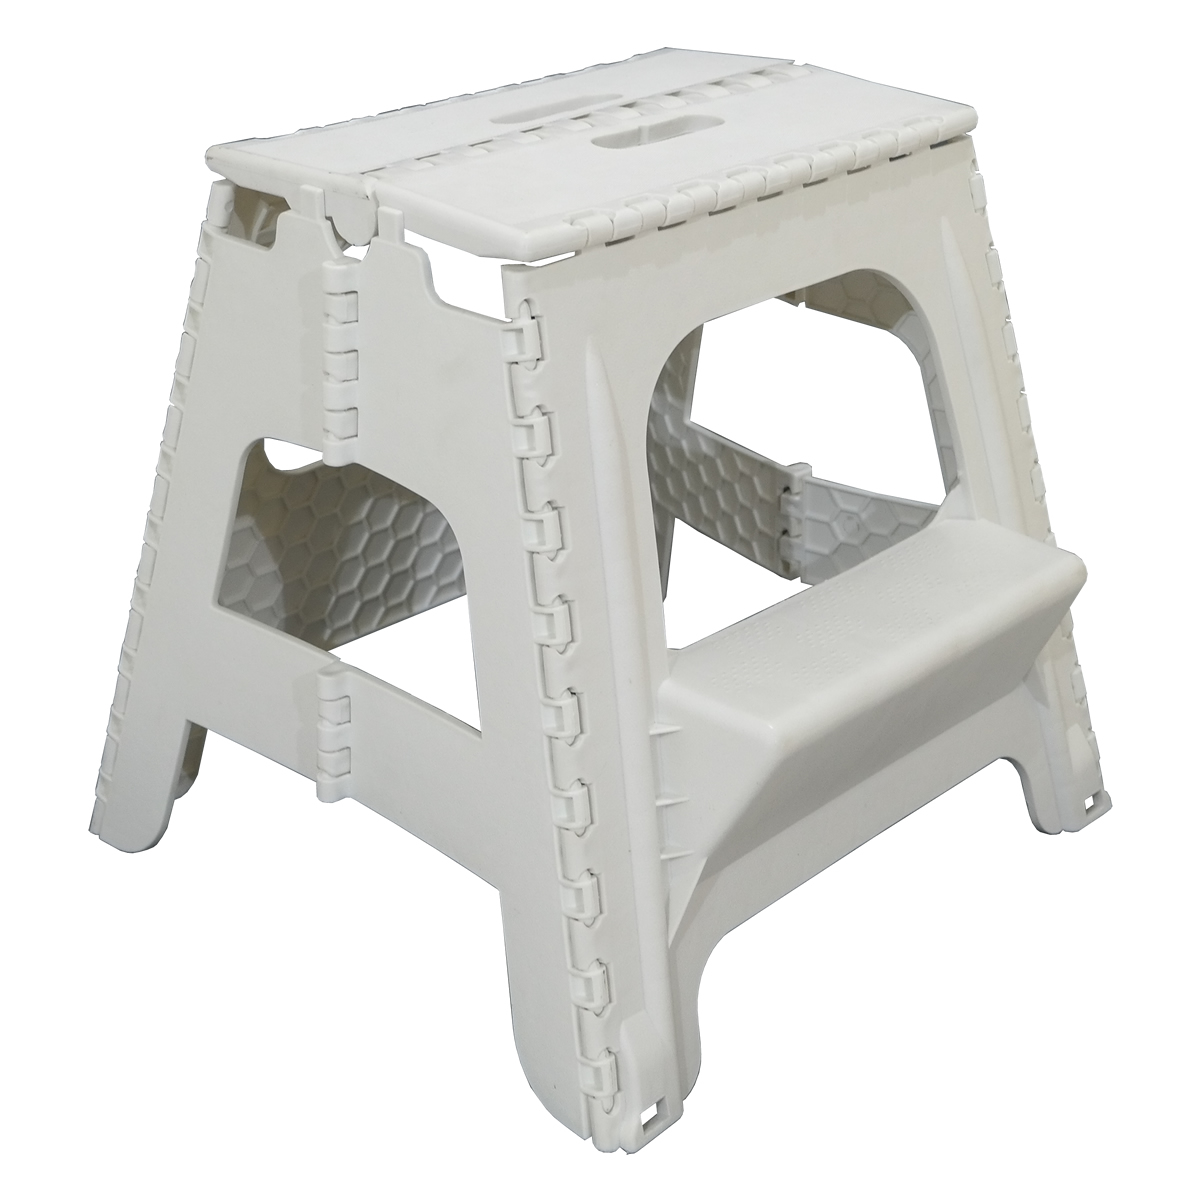 Prime Details About Plastic 2 Step Folding Step Stool Tall Home Kitchen Garage Home Easy Storage Beatyapartments Chair Design Images Beatyapartmentscom